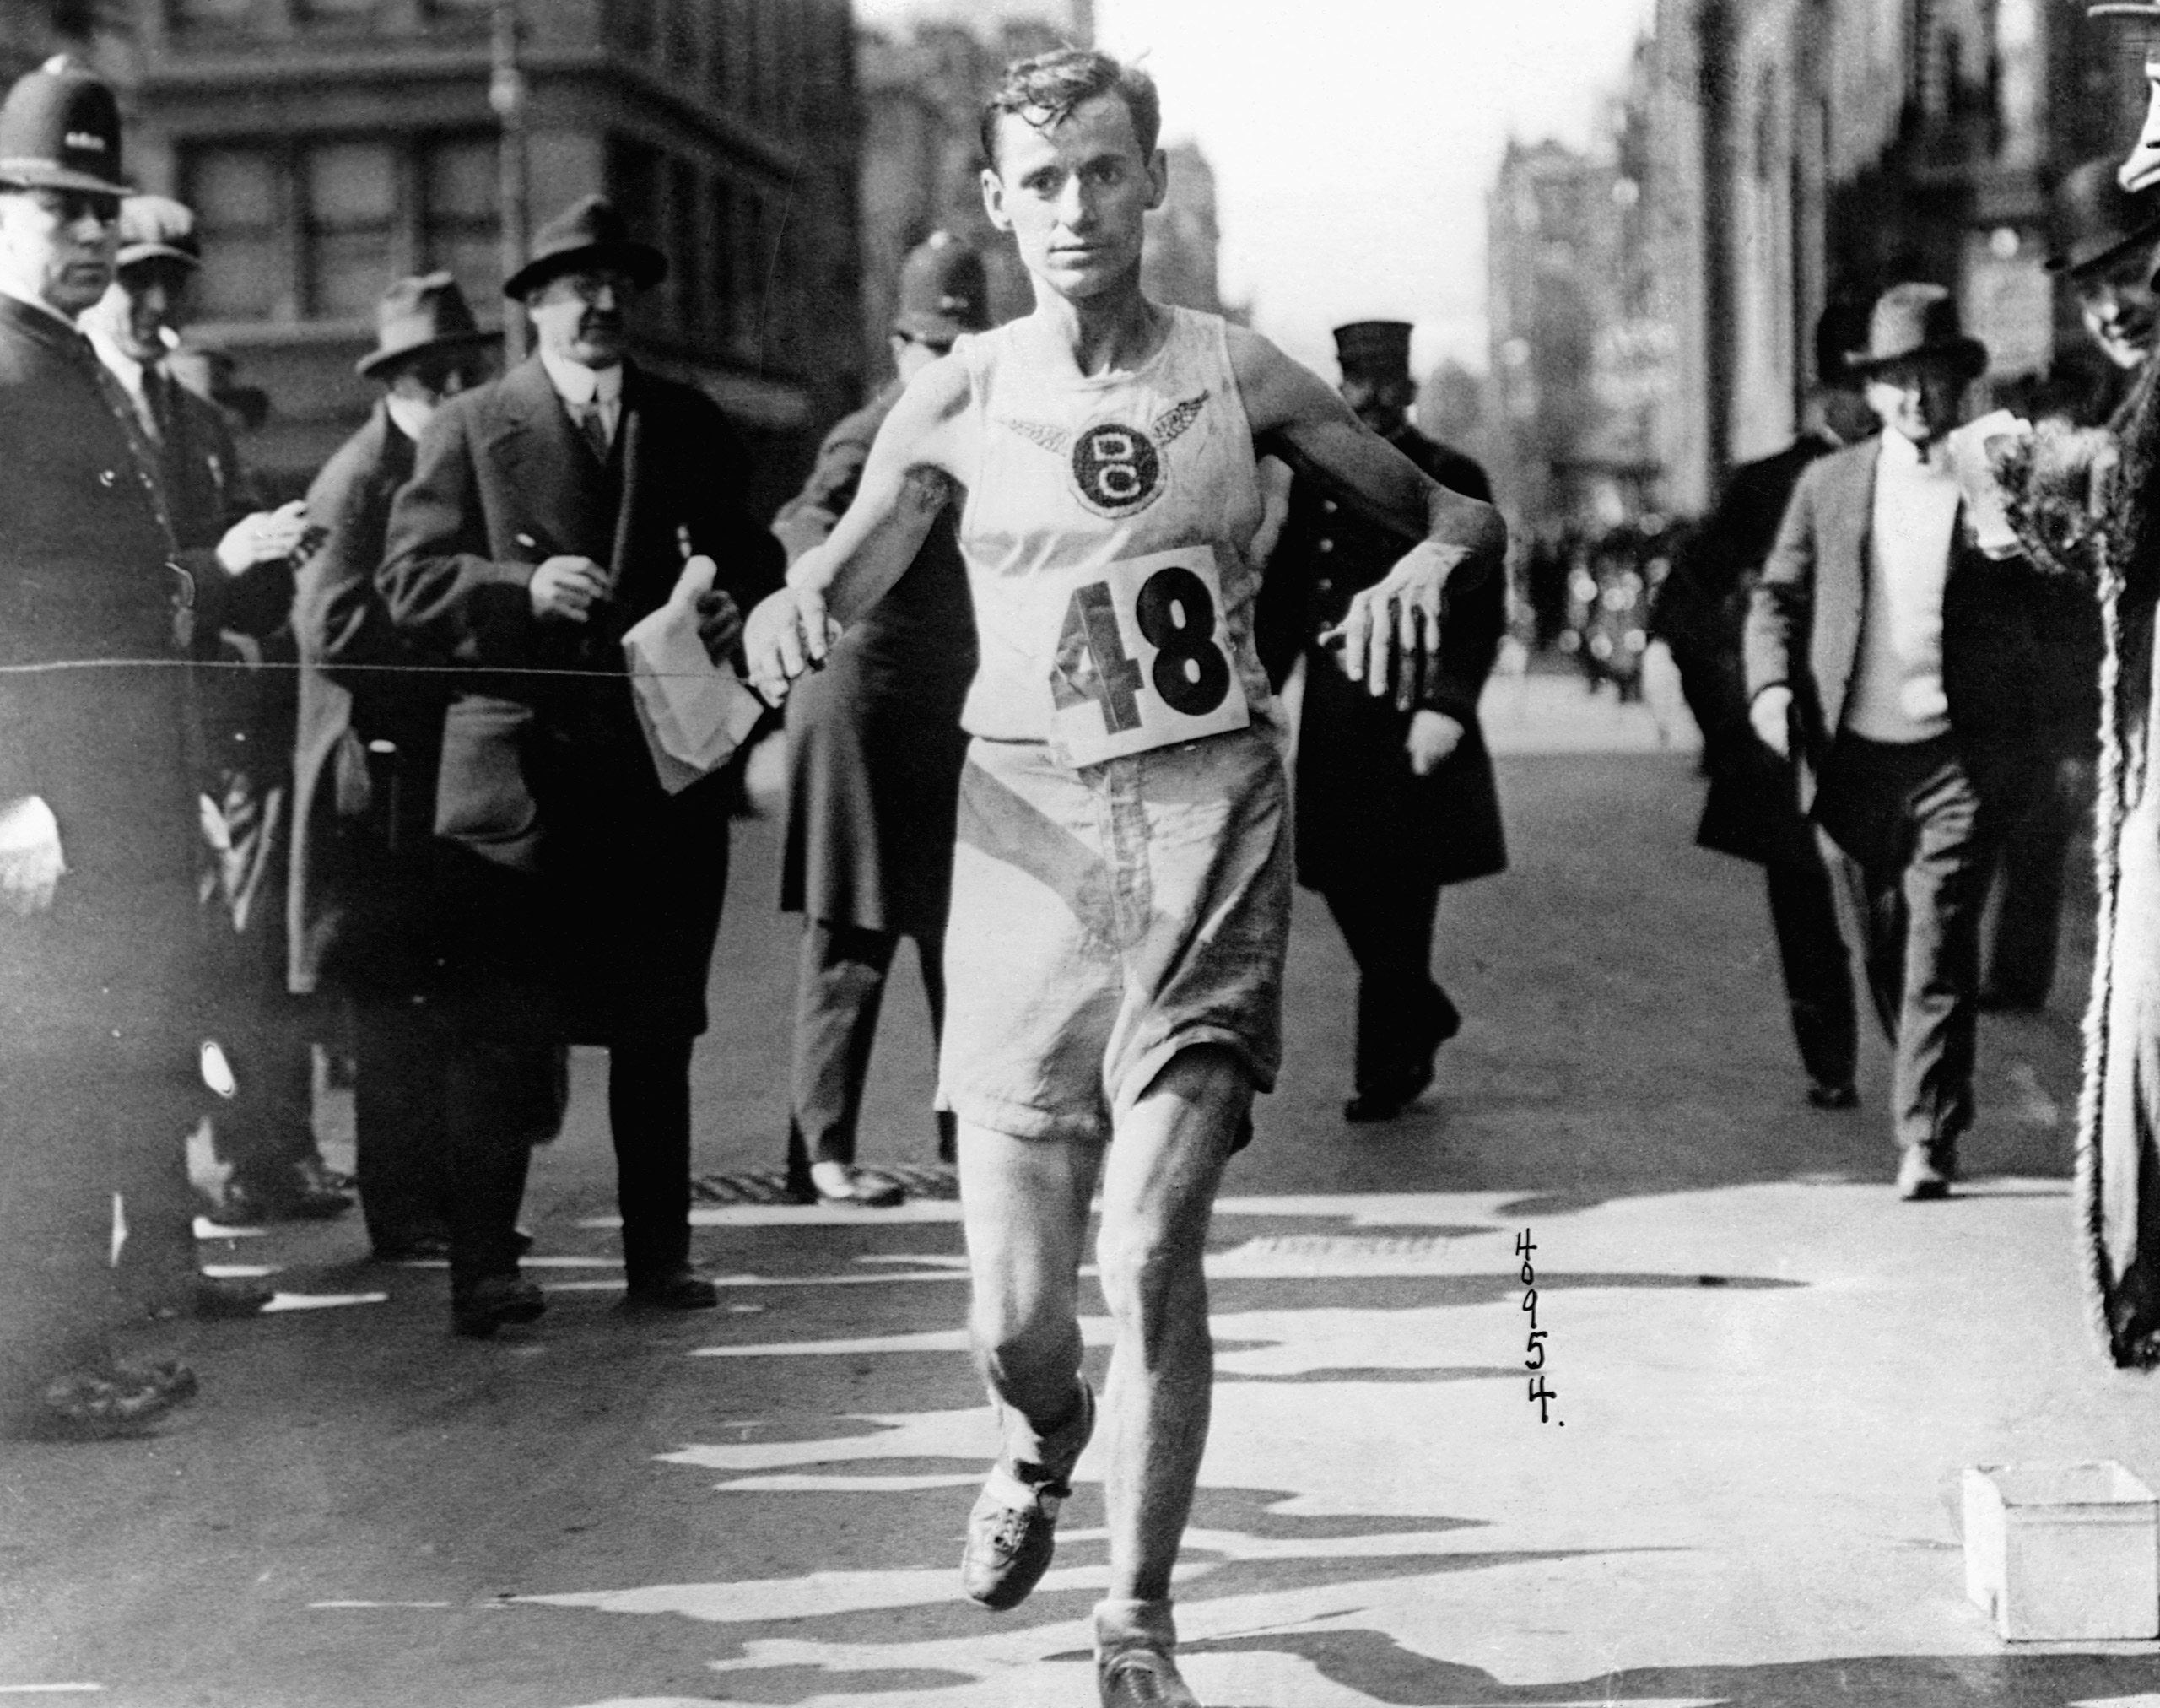 Arthur Roth, winner of the 1916 Boston Marathon.